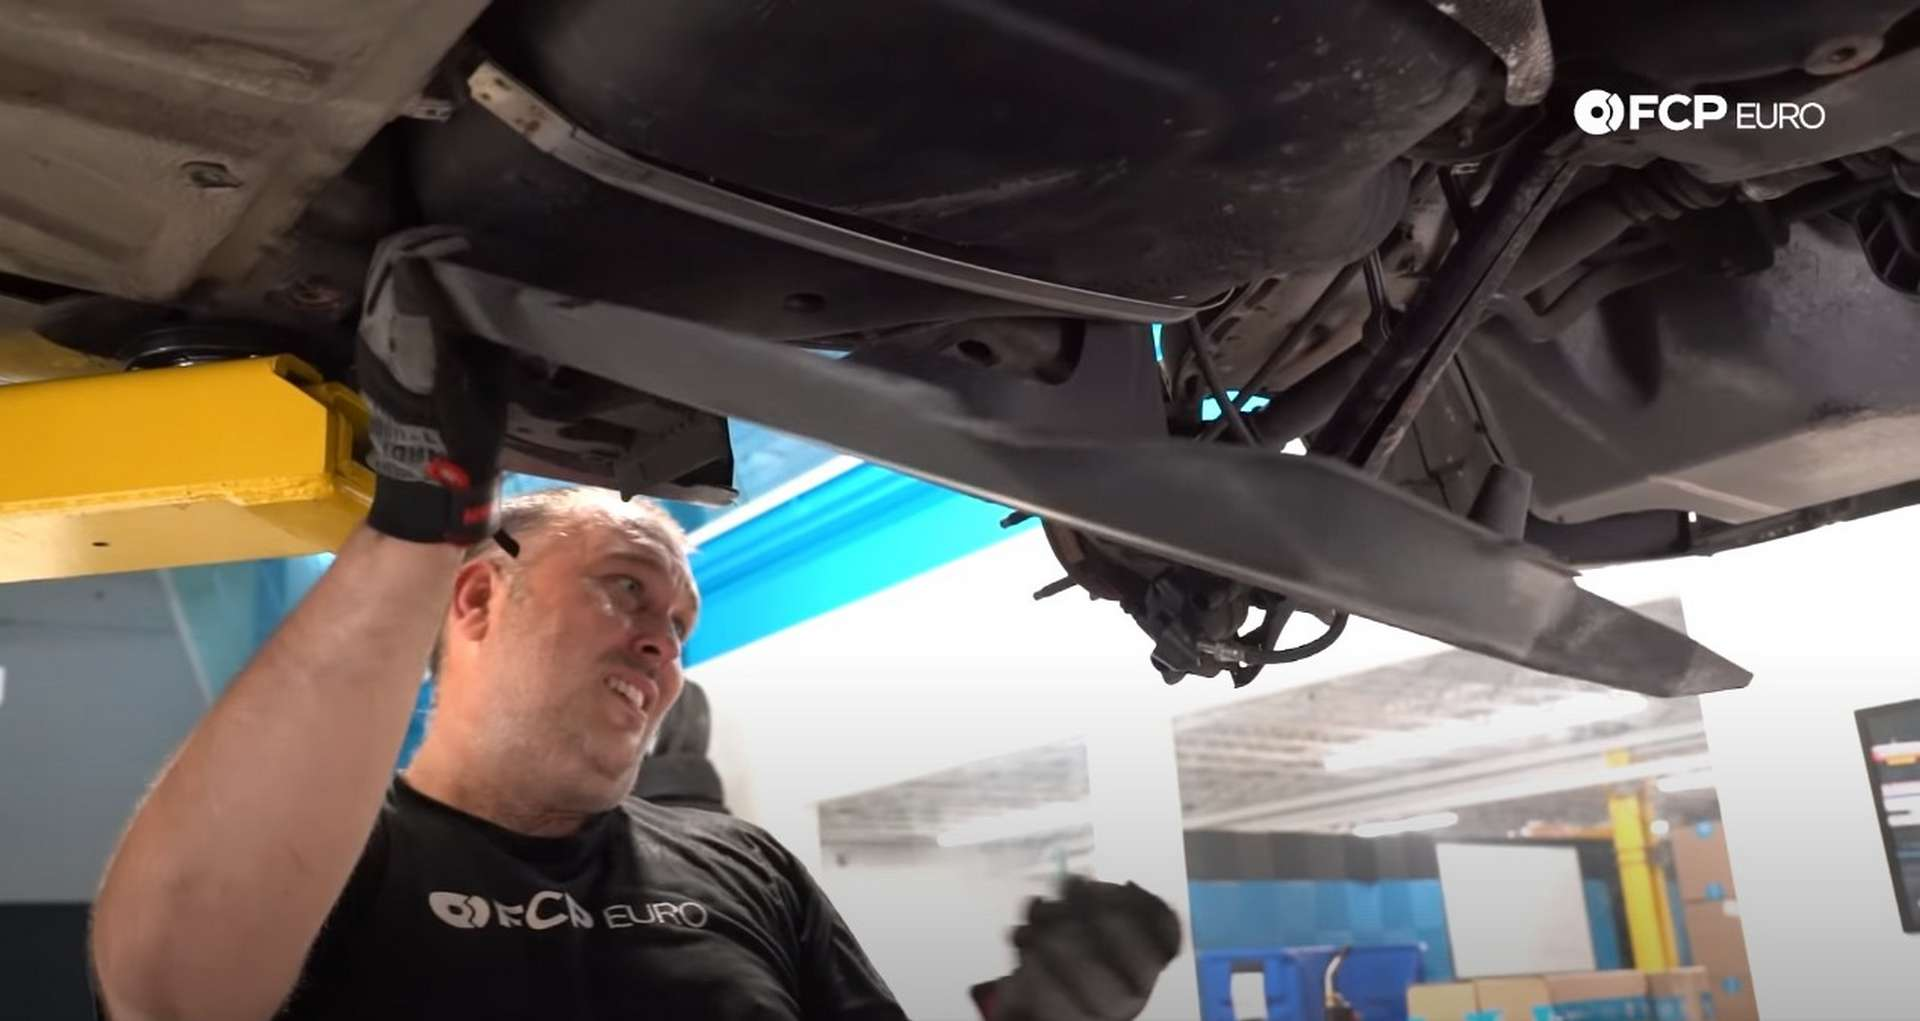 DIY E46 BMW M3 Rear Subframe Refresh Part 1 removing the splash shields